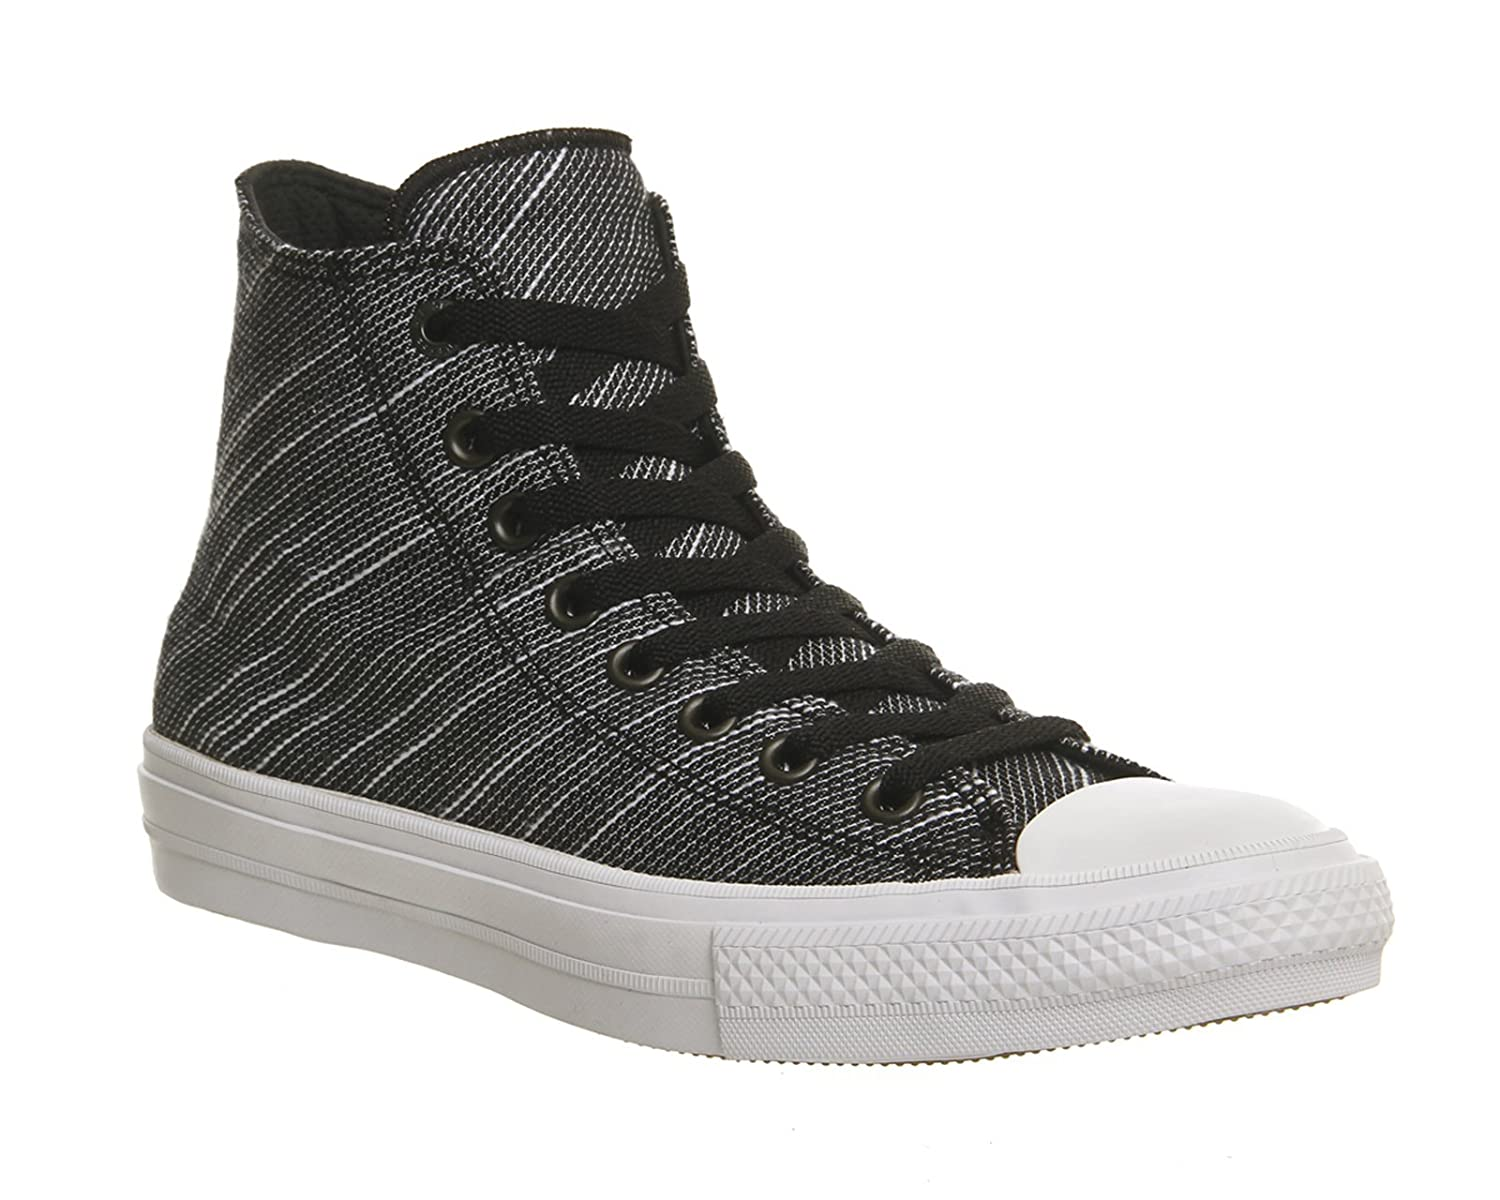 677f25a118a Amazon.com | Converse Chuck Taylor All Star Ii Hi Knit Canvas Shoe |  Fashion Sneakers